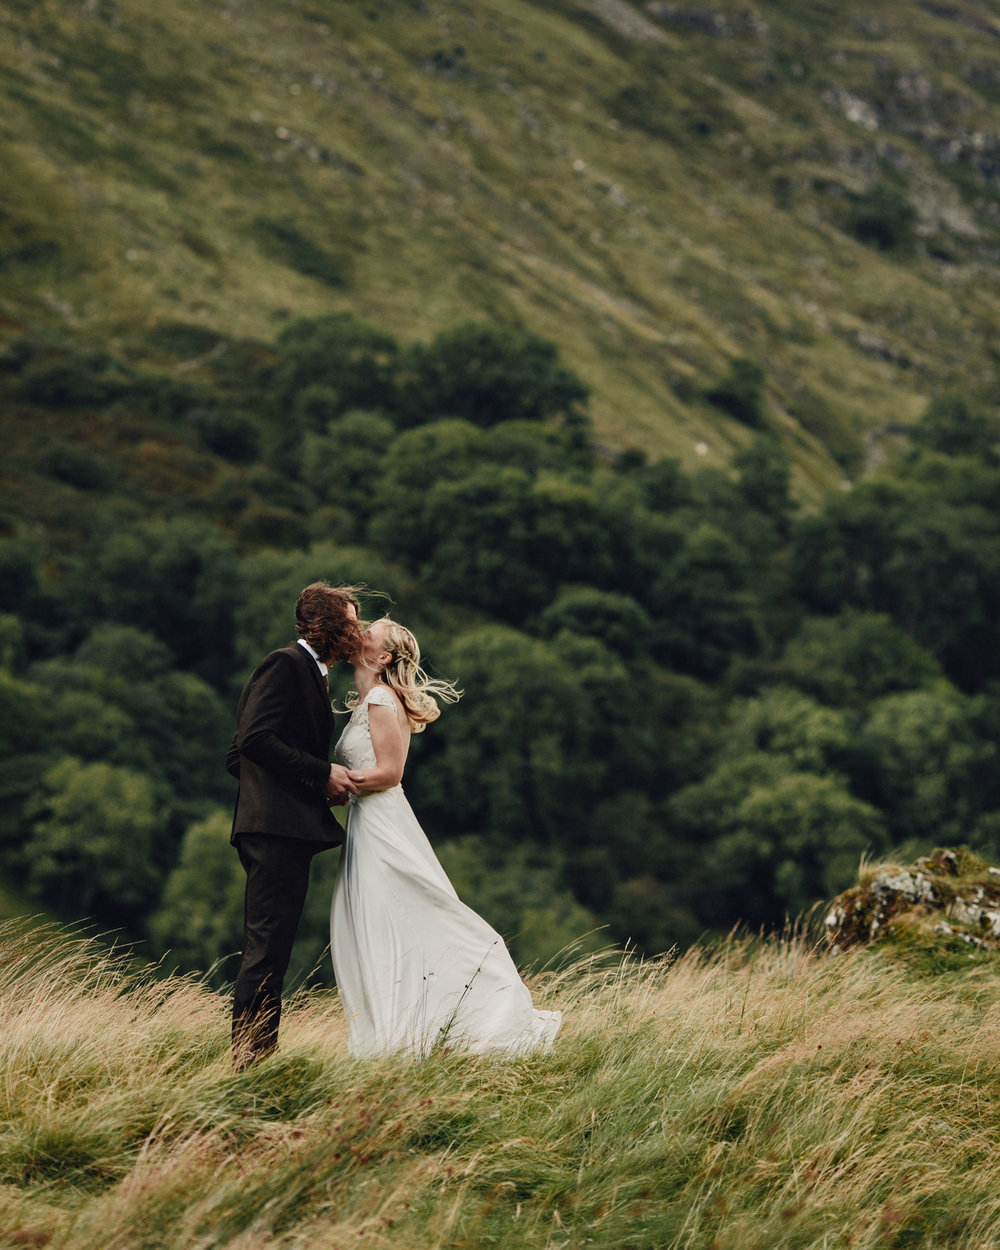 Snowdonia-Wales-Wedding-Photos-0355.jpg